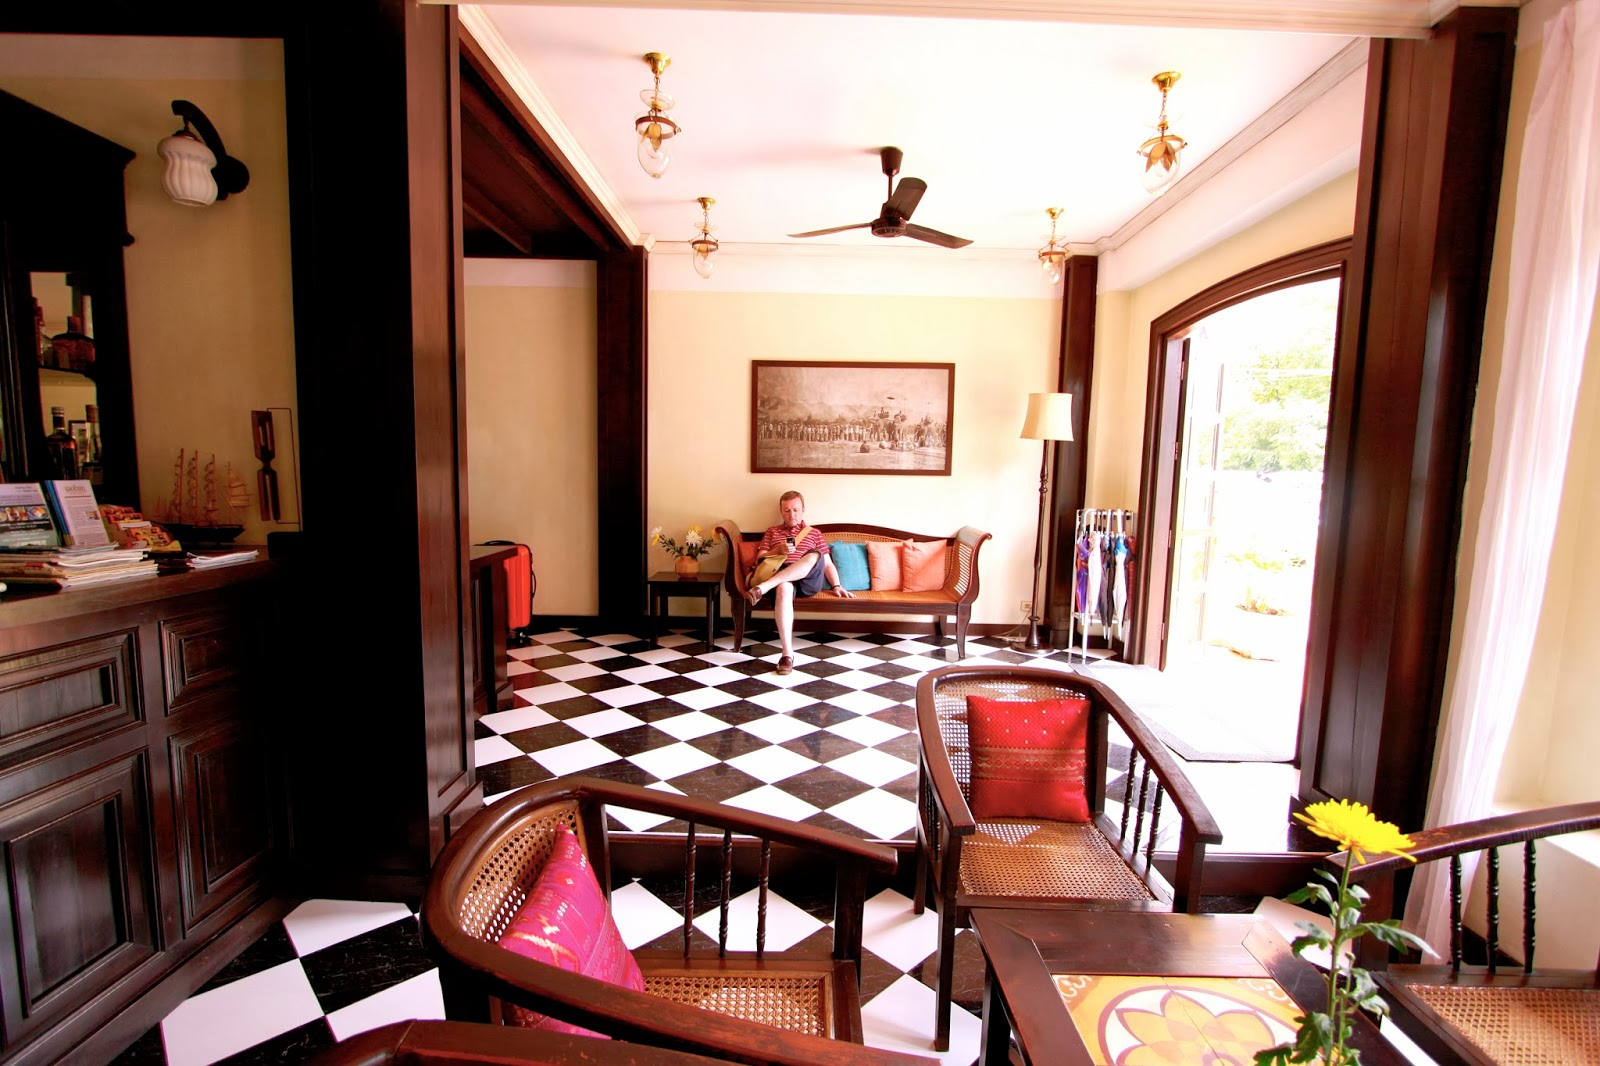 khamvongsa hotel The hotel is only 100 metres from the Mekong river, and a short walk from  the shops and restaurants of Rue Setthathilath, in a quiet location  opposite the ...